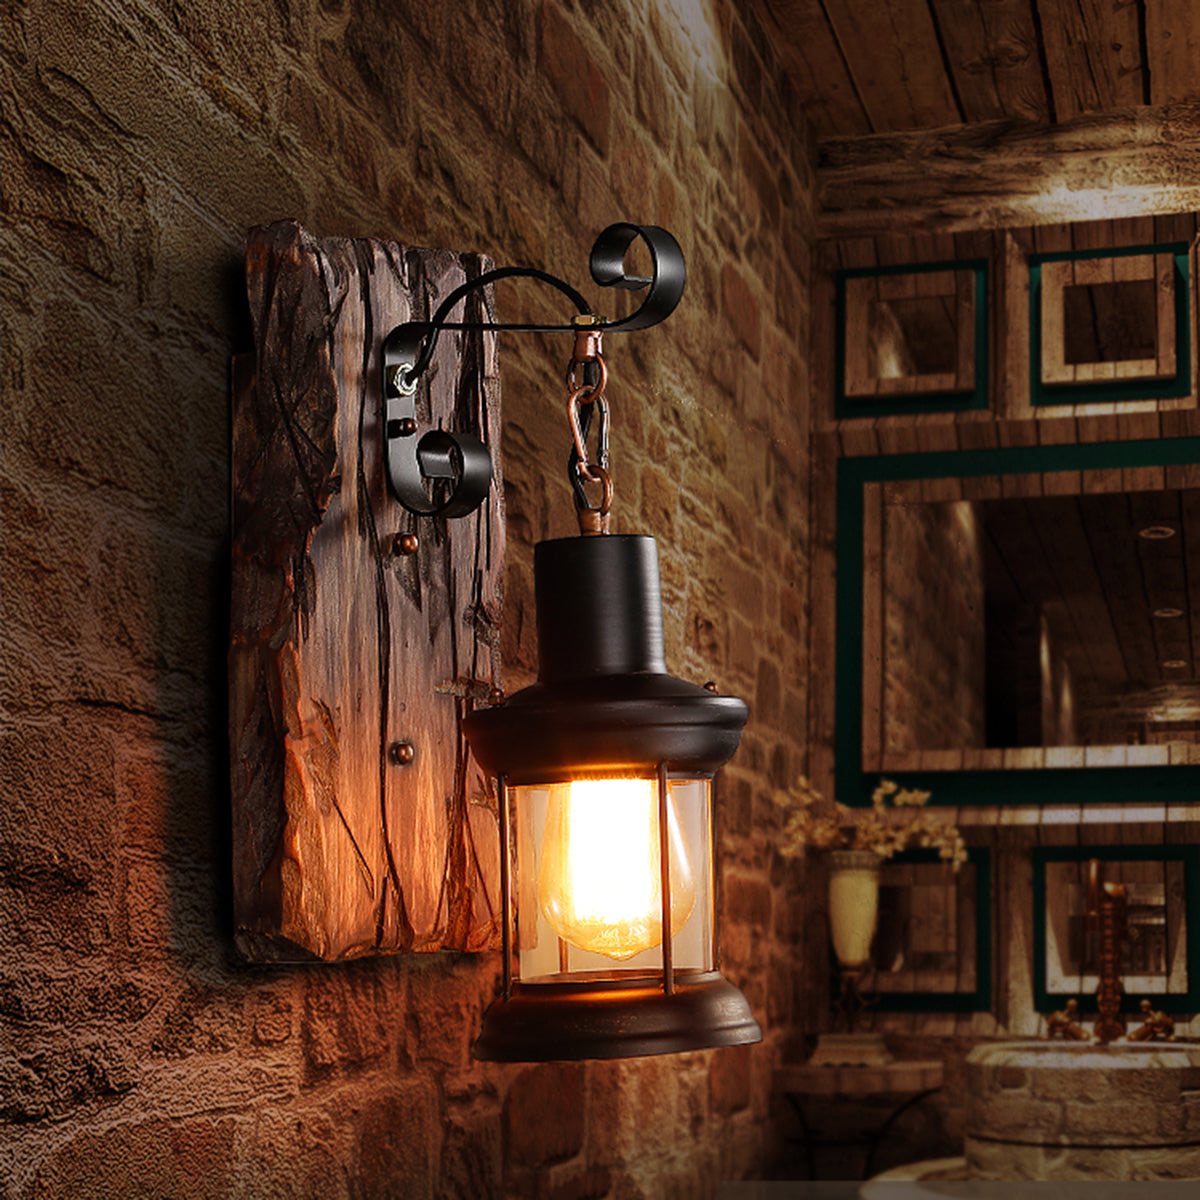 Dalran™ Basement Bar Rustic Sconce Industrial Metal Vintage Wall Lamp Fixture Light